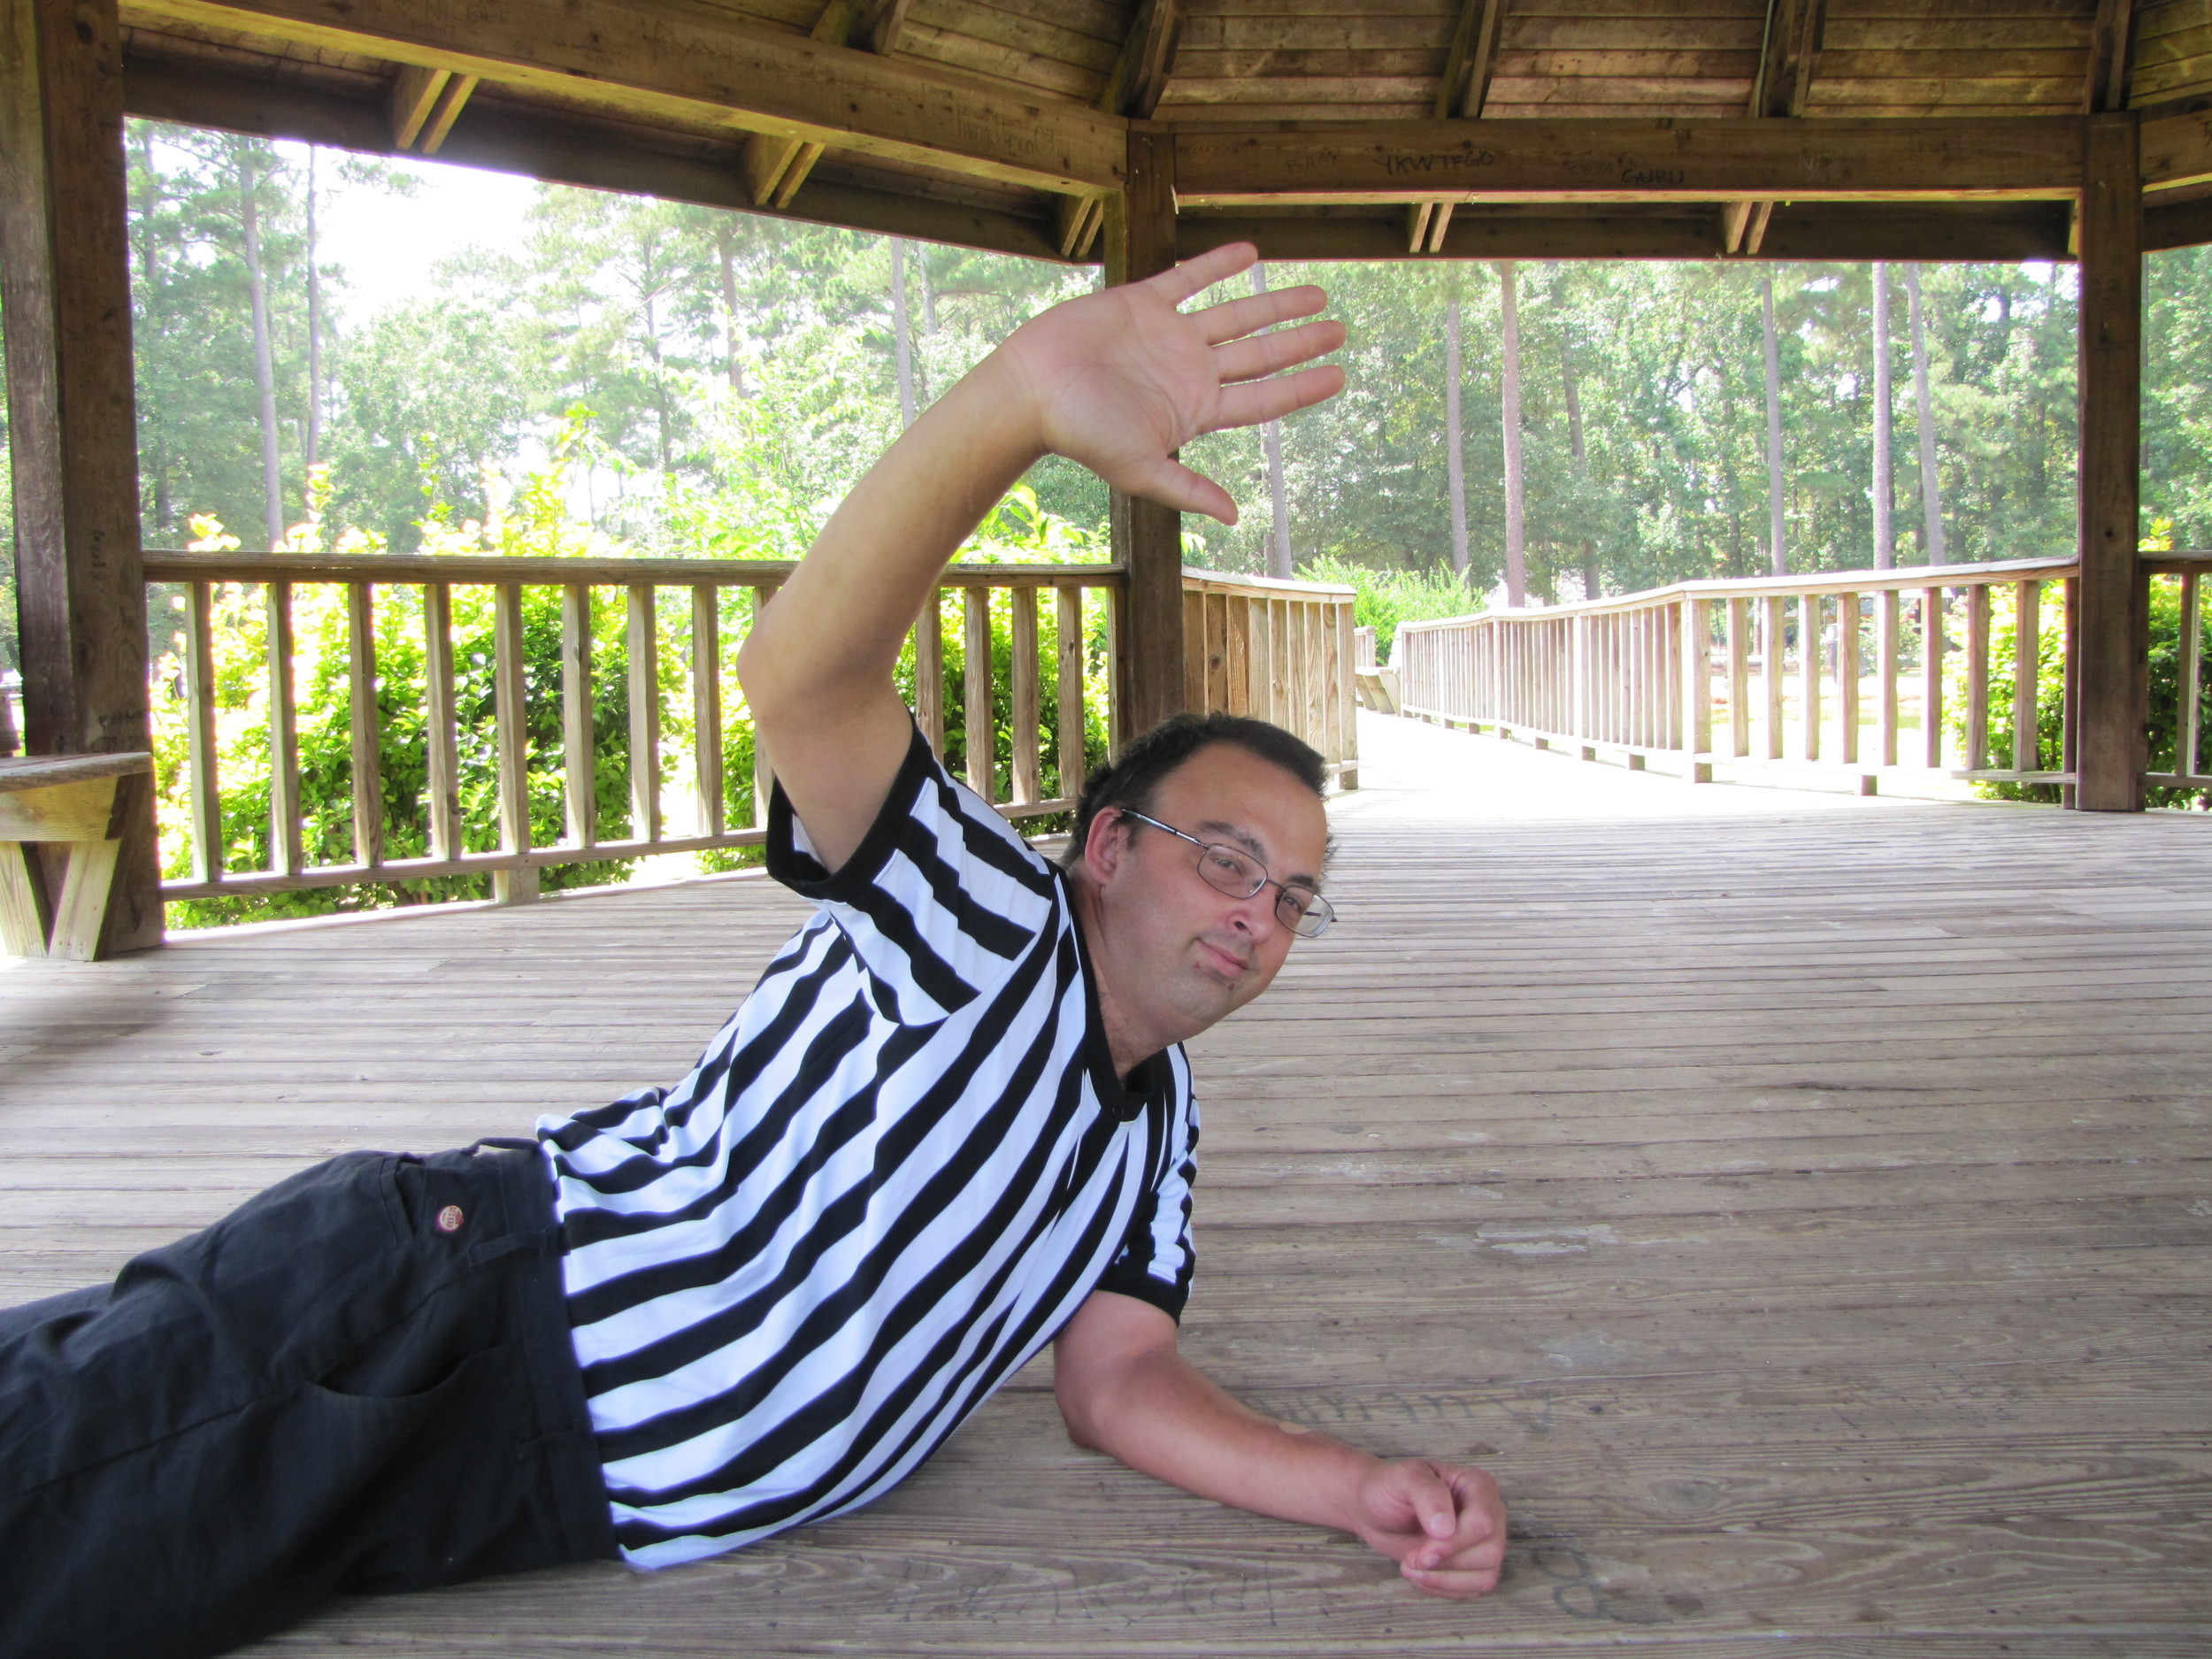 Chris Emerson, 36, said he's refereed more than 5,000 pro wrestling bouts over the last 20 years.